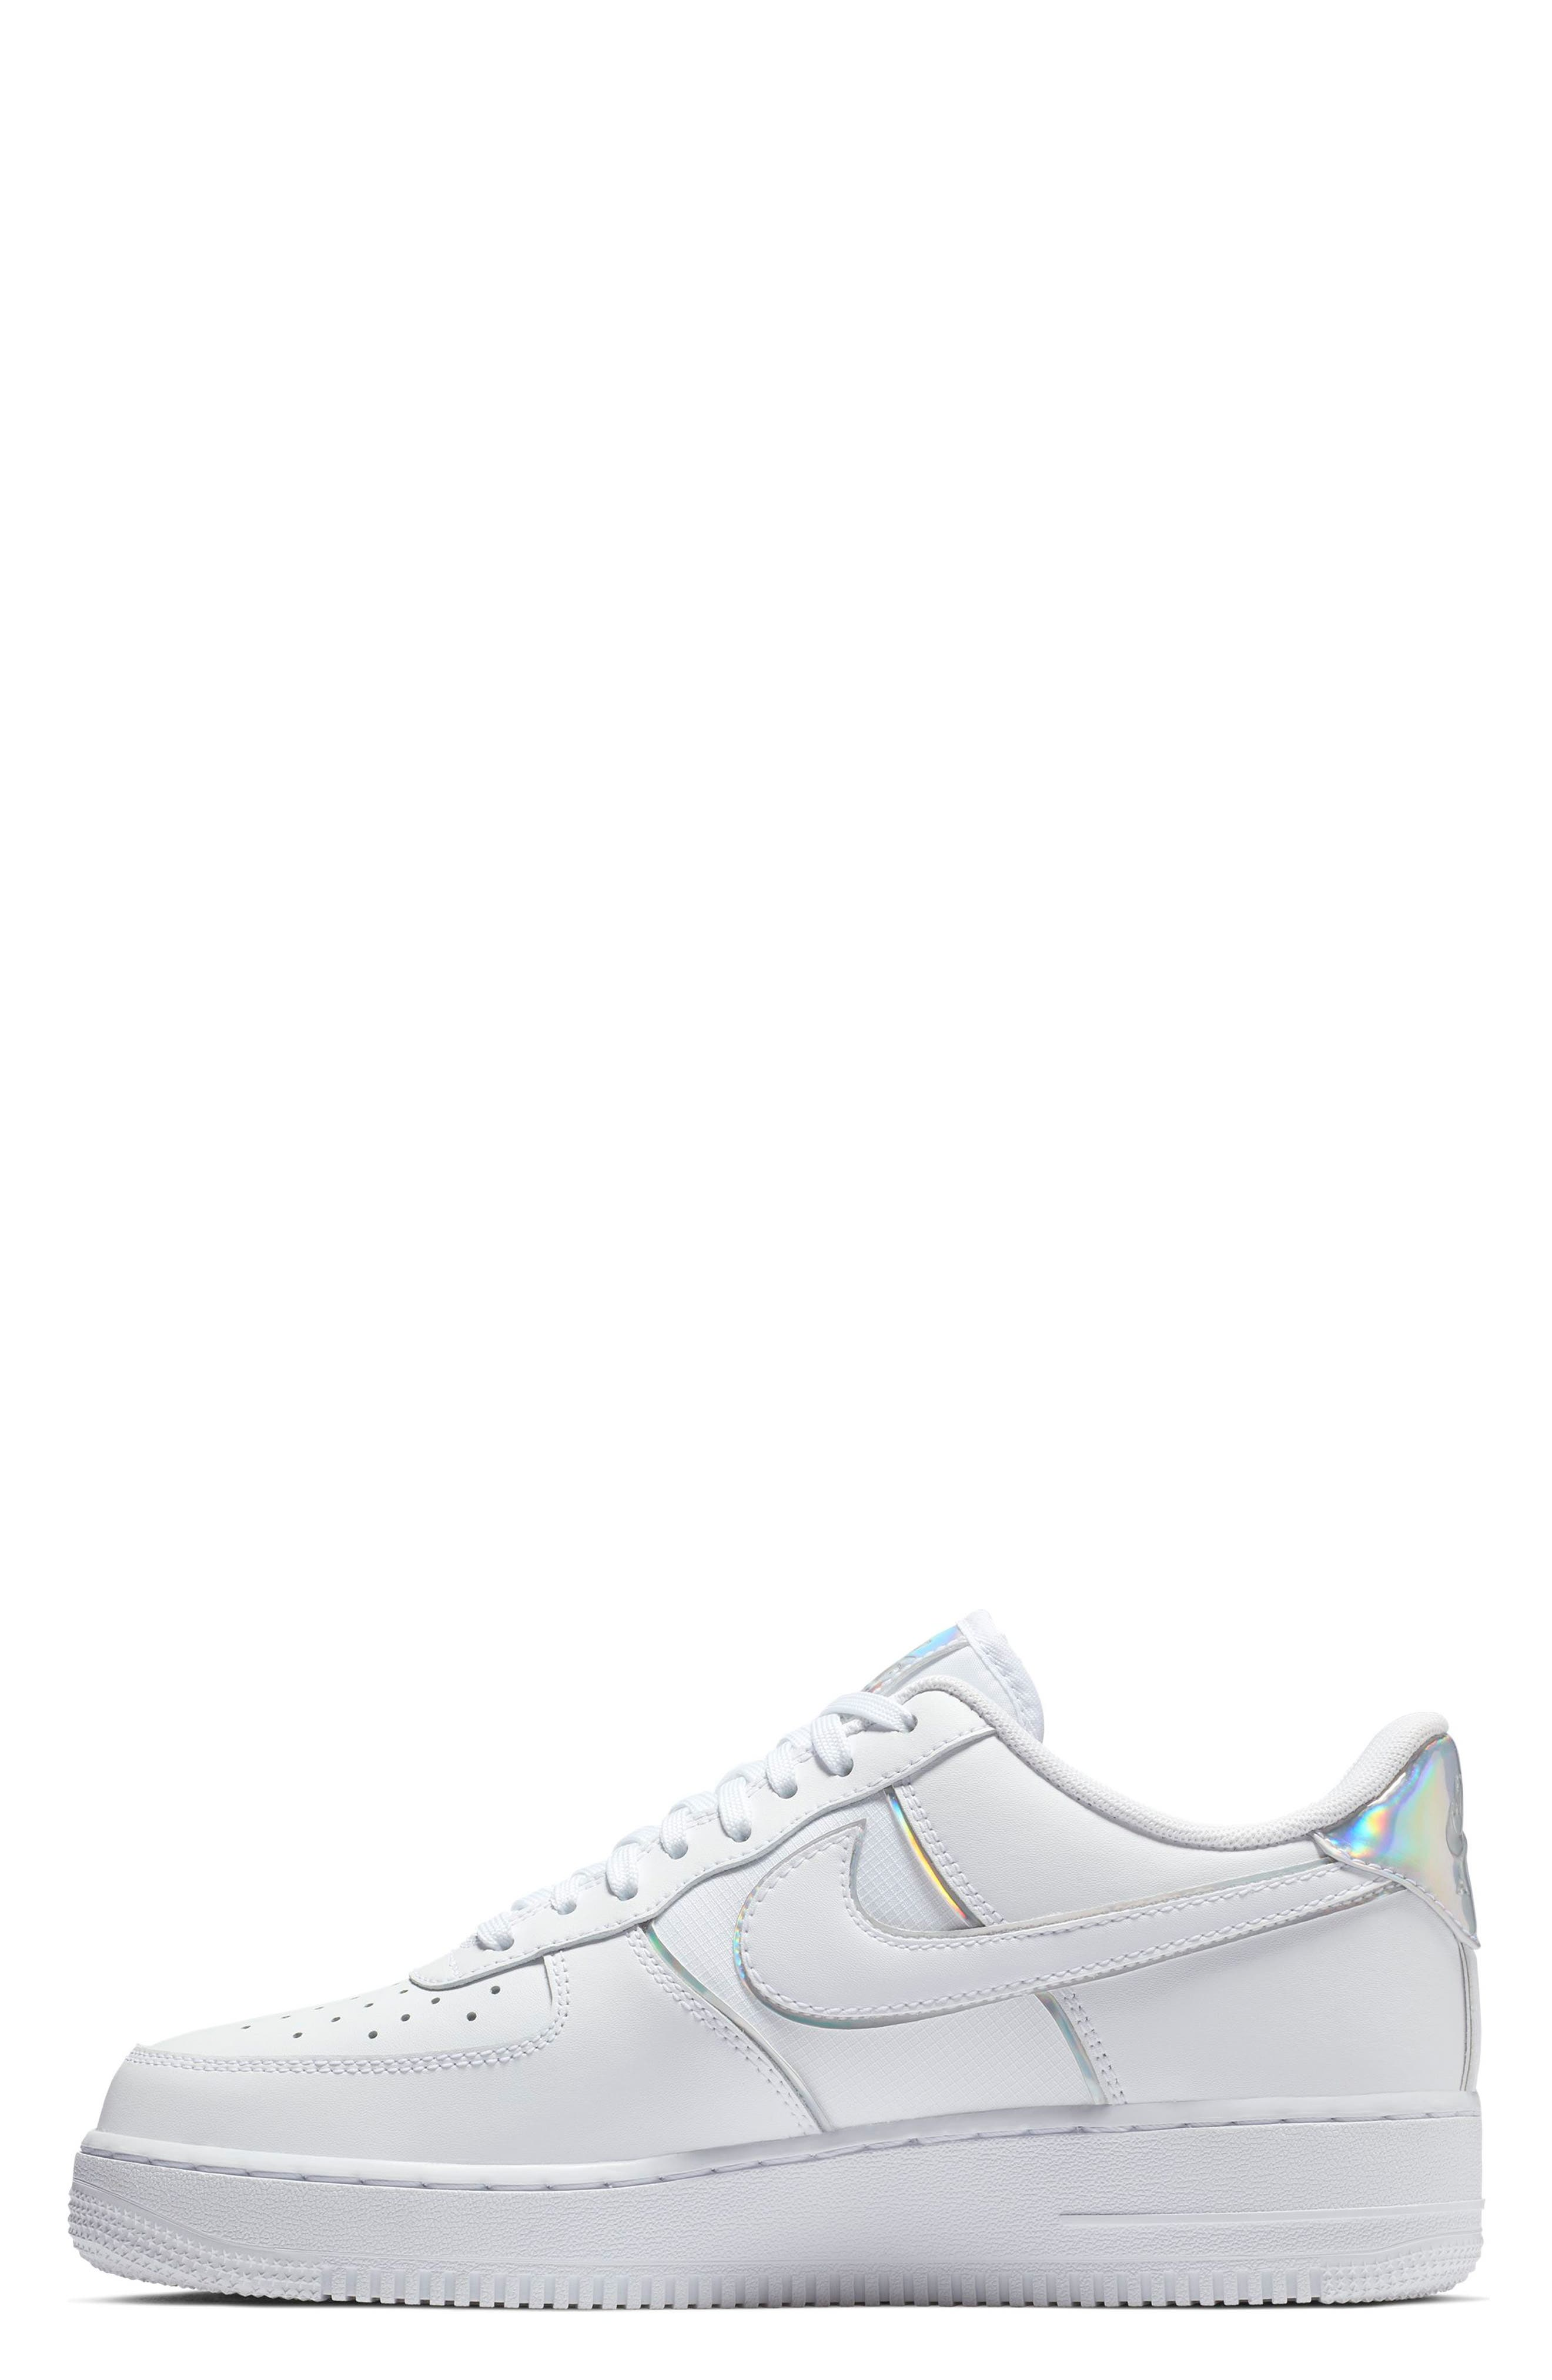 Air Force 1 '07 LV8 4 Sneaker,                             Alternate thumbnail 3, color,                             WHITE/ WHITE/ WHITE